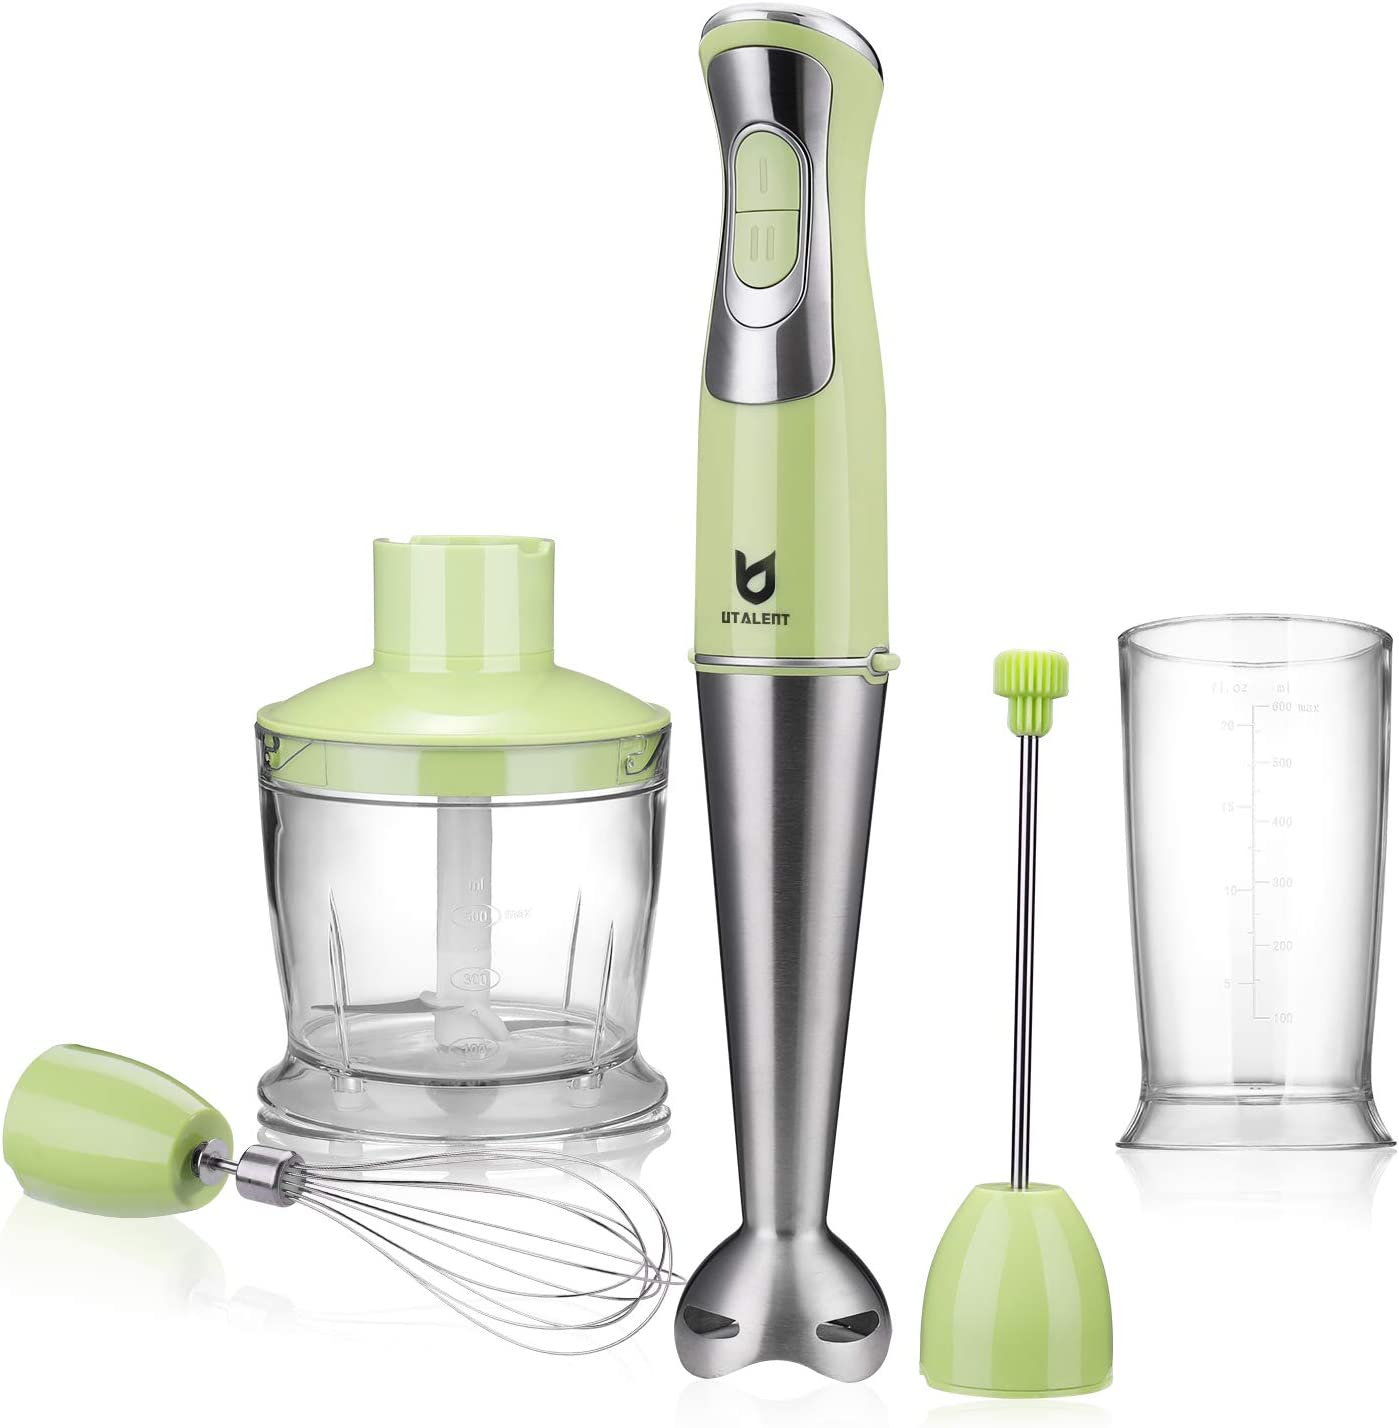 Immersion Hand Blender, Utalent 5-in-1 8-Speed Stick Blender with 500ml Food Grinder, BPA-Free, 600ml Container, Milk Frother, Egg Whisk, Puree Infant Food, Smoothies, Sauces and Soups - Green: Kitchen & Dining